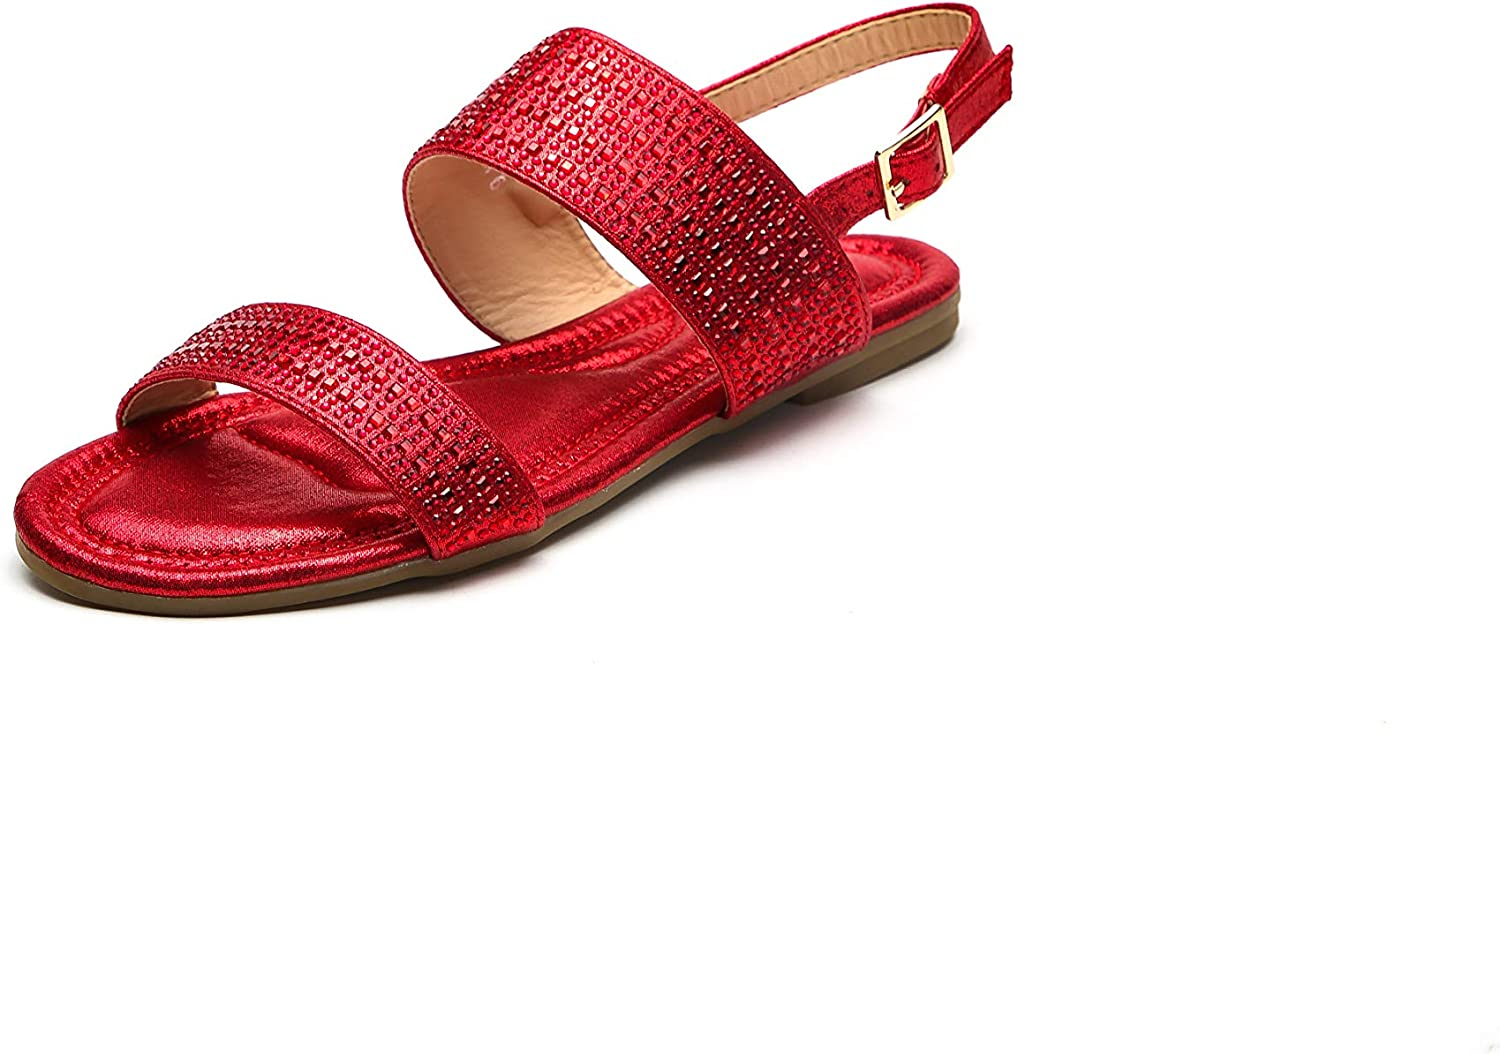 Ashley A A-EILLEEN01 Sparkly Ankle Strap Flat Sandals for Women